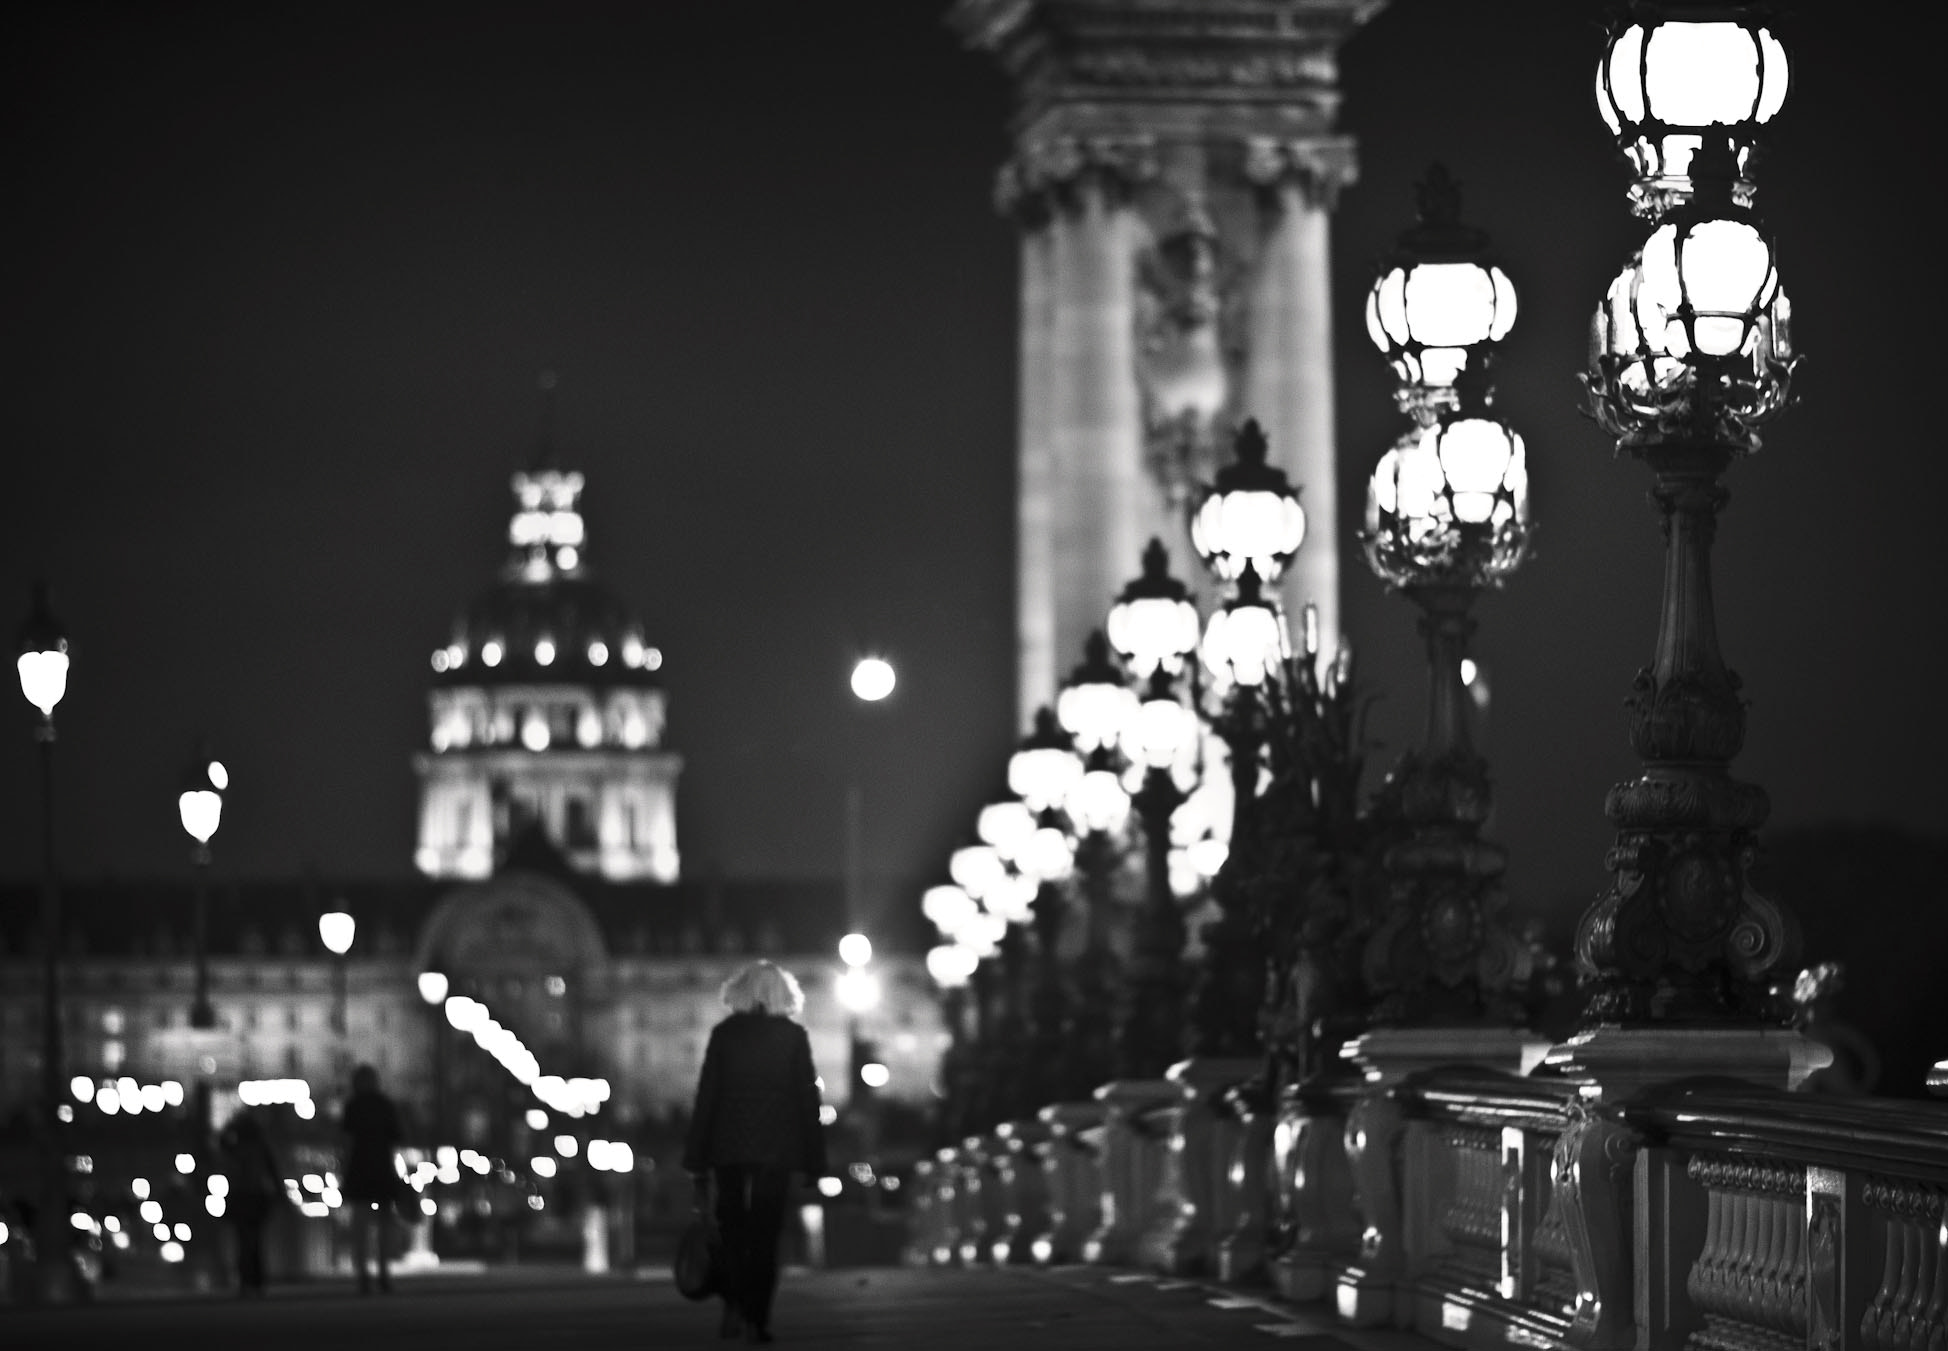 Photograph In the dark night. by Laurence Penne on 500px